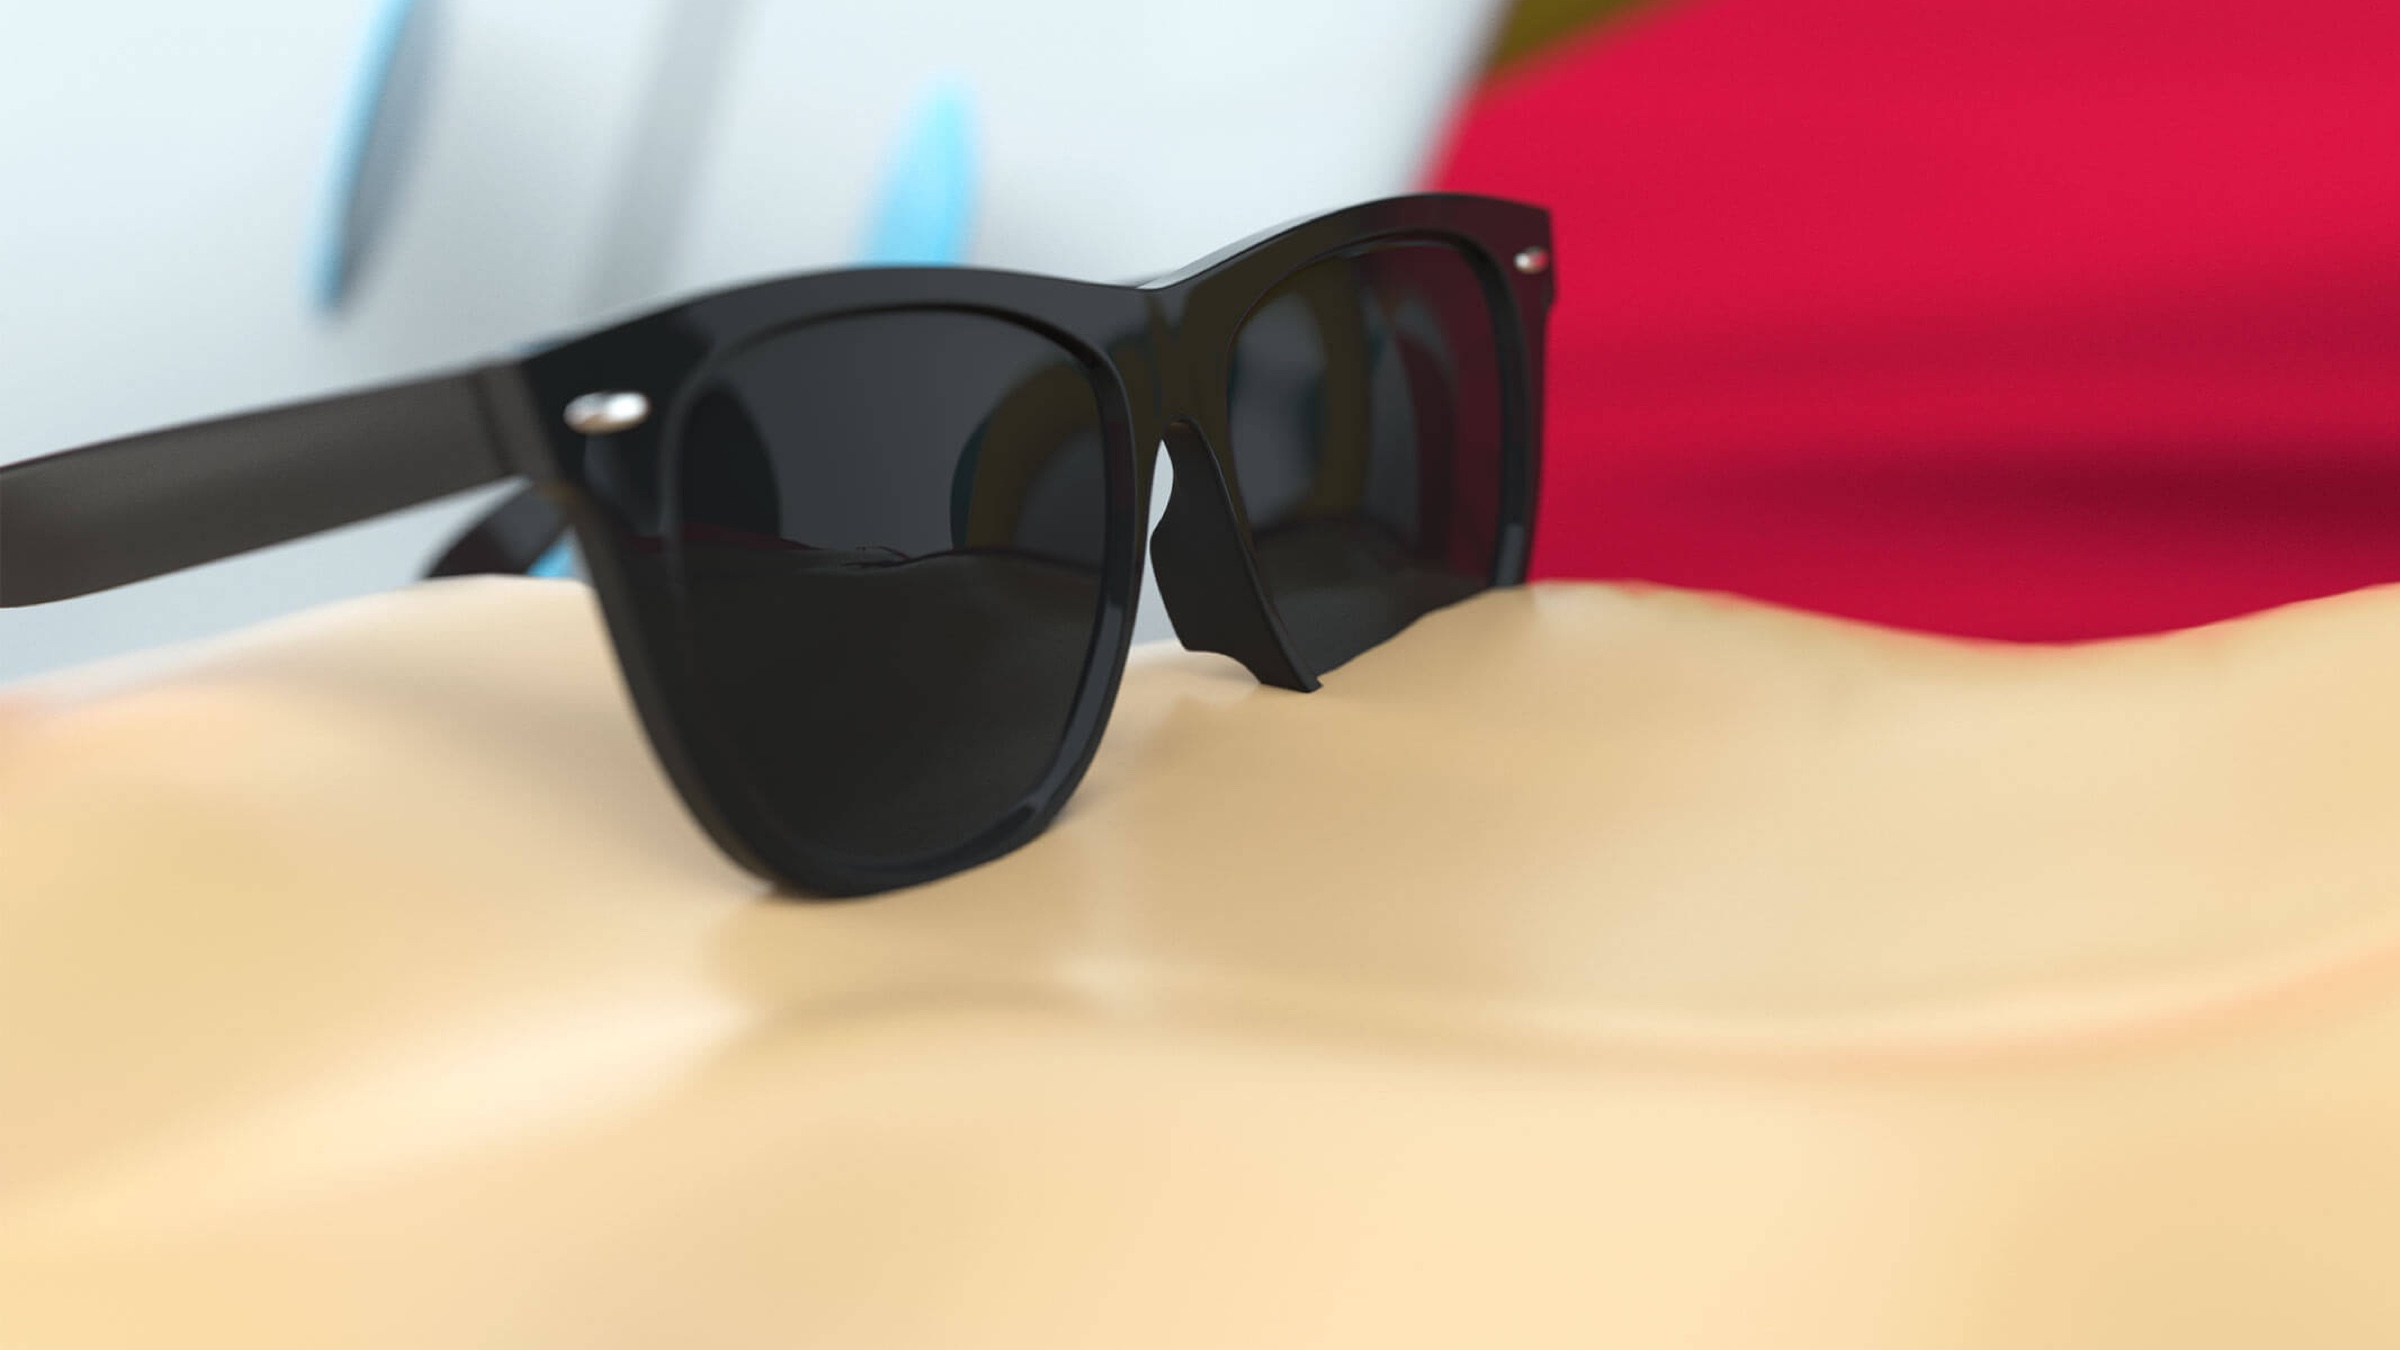 Rayban glasses in the sand